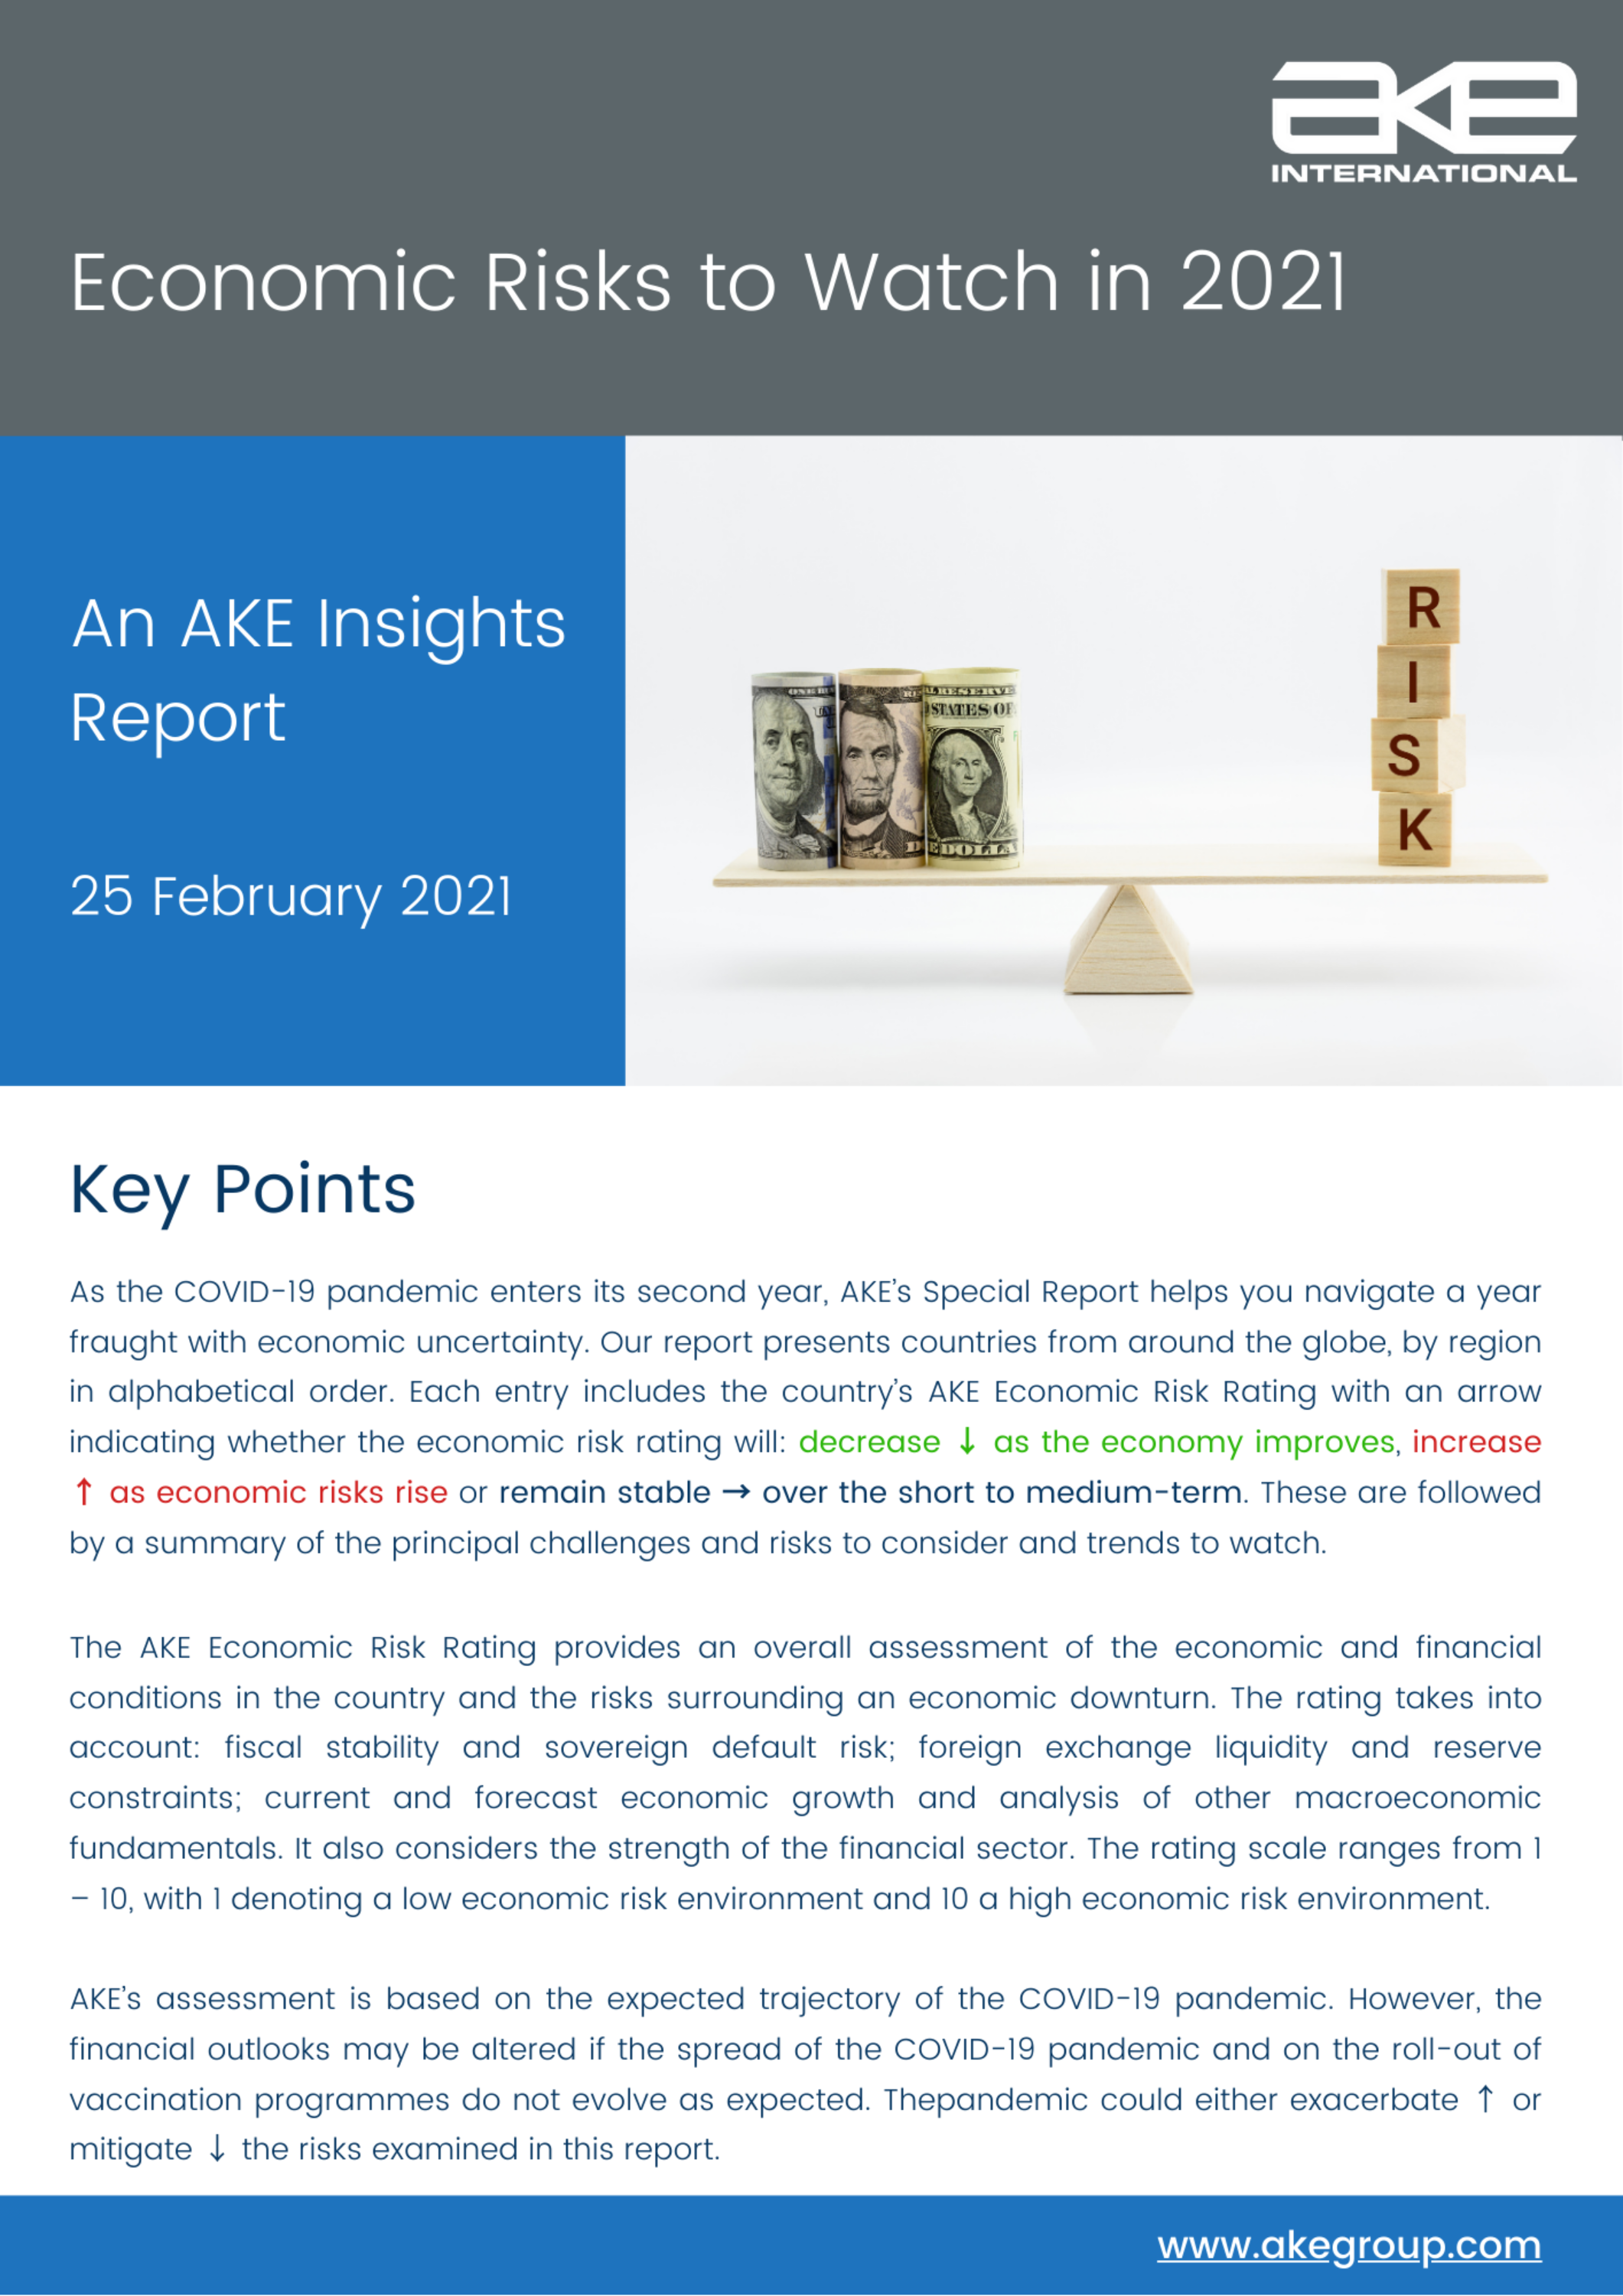 AKE Insights Report: Economic Risks to Watch in 2021